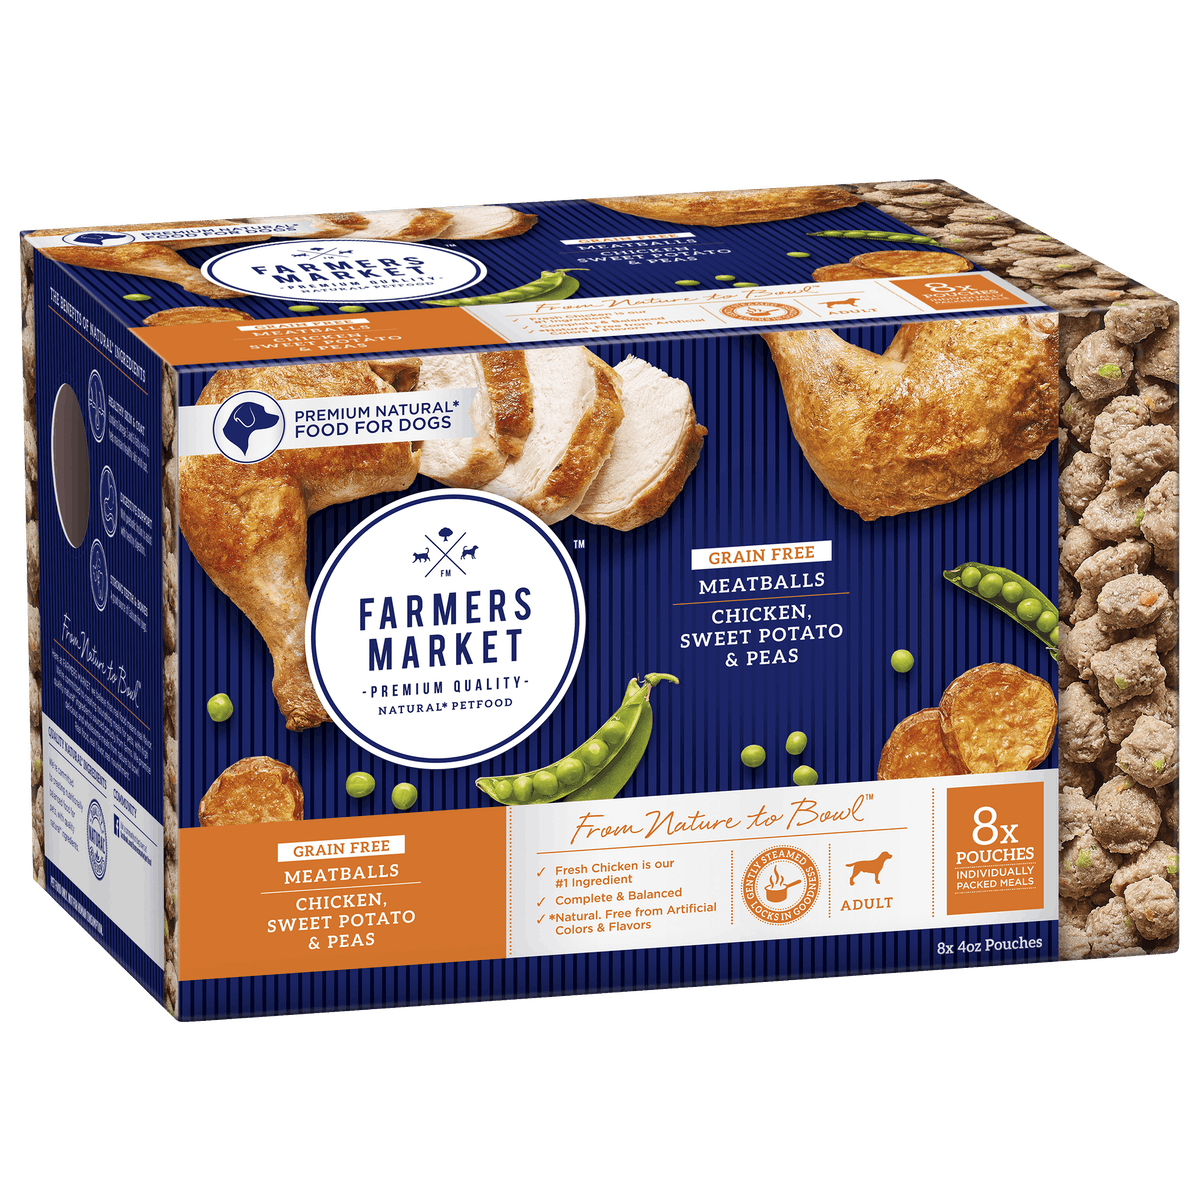 Farmers Market | Grain-Free Chicken, Sweet Potato and Peas Meatballs | Chilled dog food | Front of pack